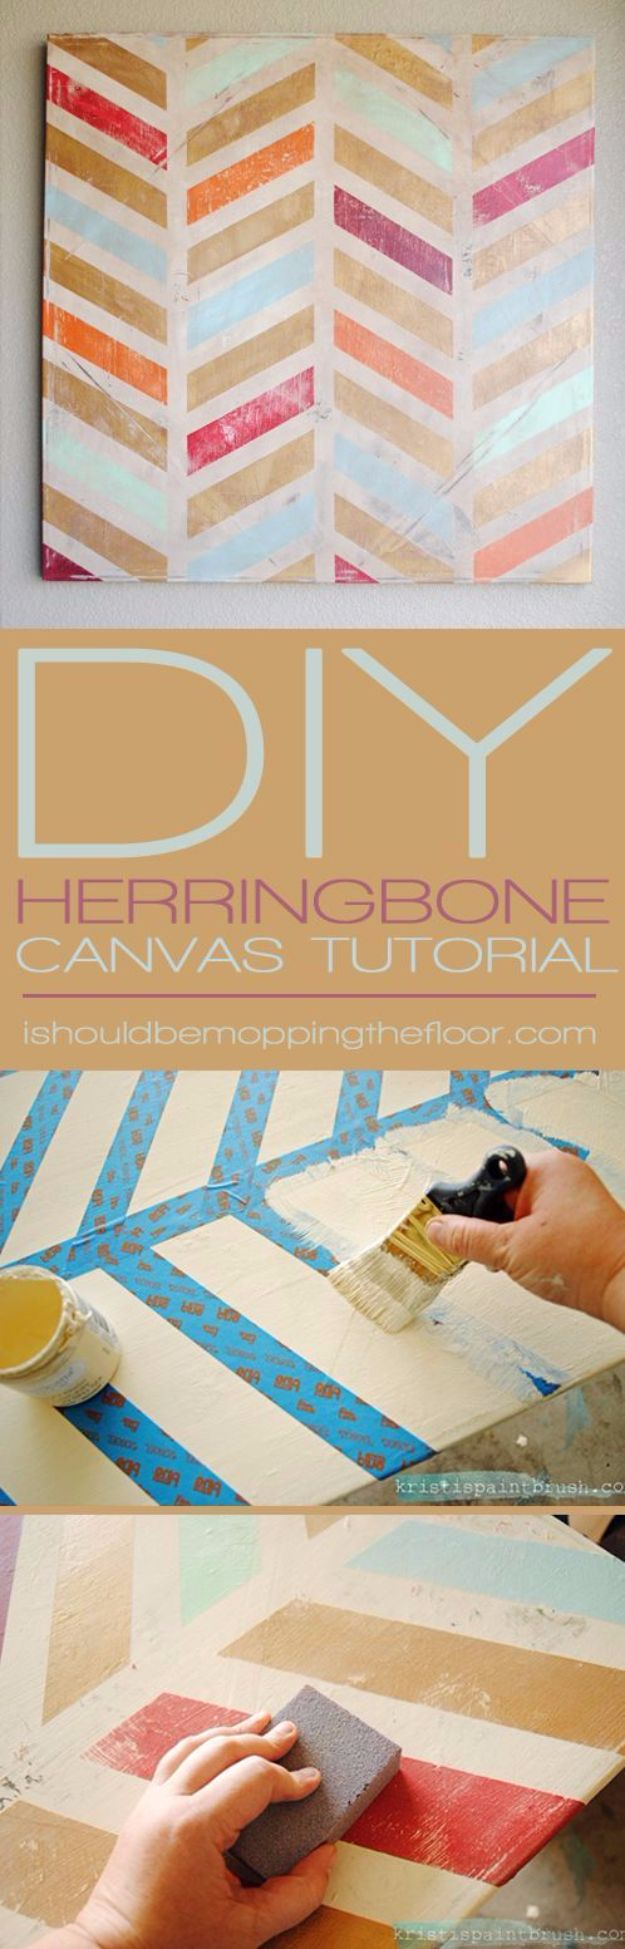 DIY Canvas Painting Ideas - DIY Herringbone Canvas Art - Cool and Easy Wall Art Ideas You Can Make On A Budget #painting #diyart #diygifts